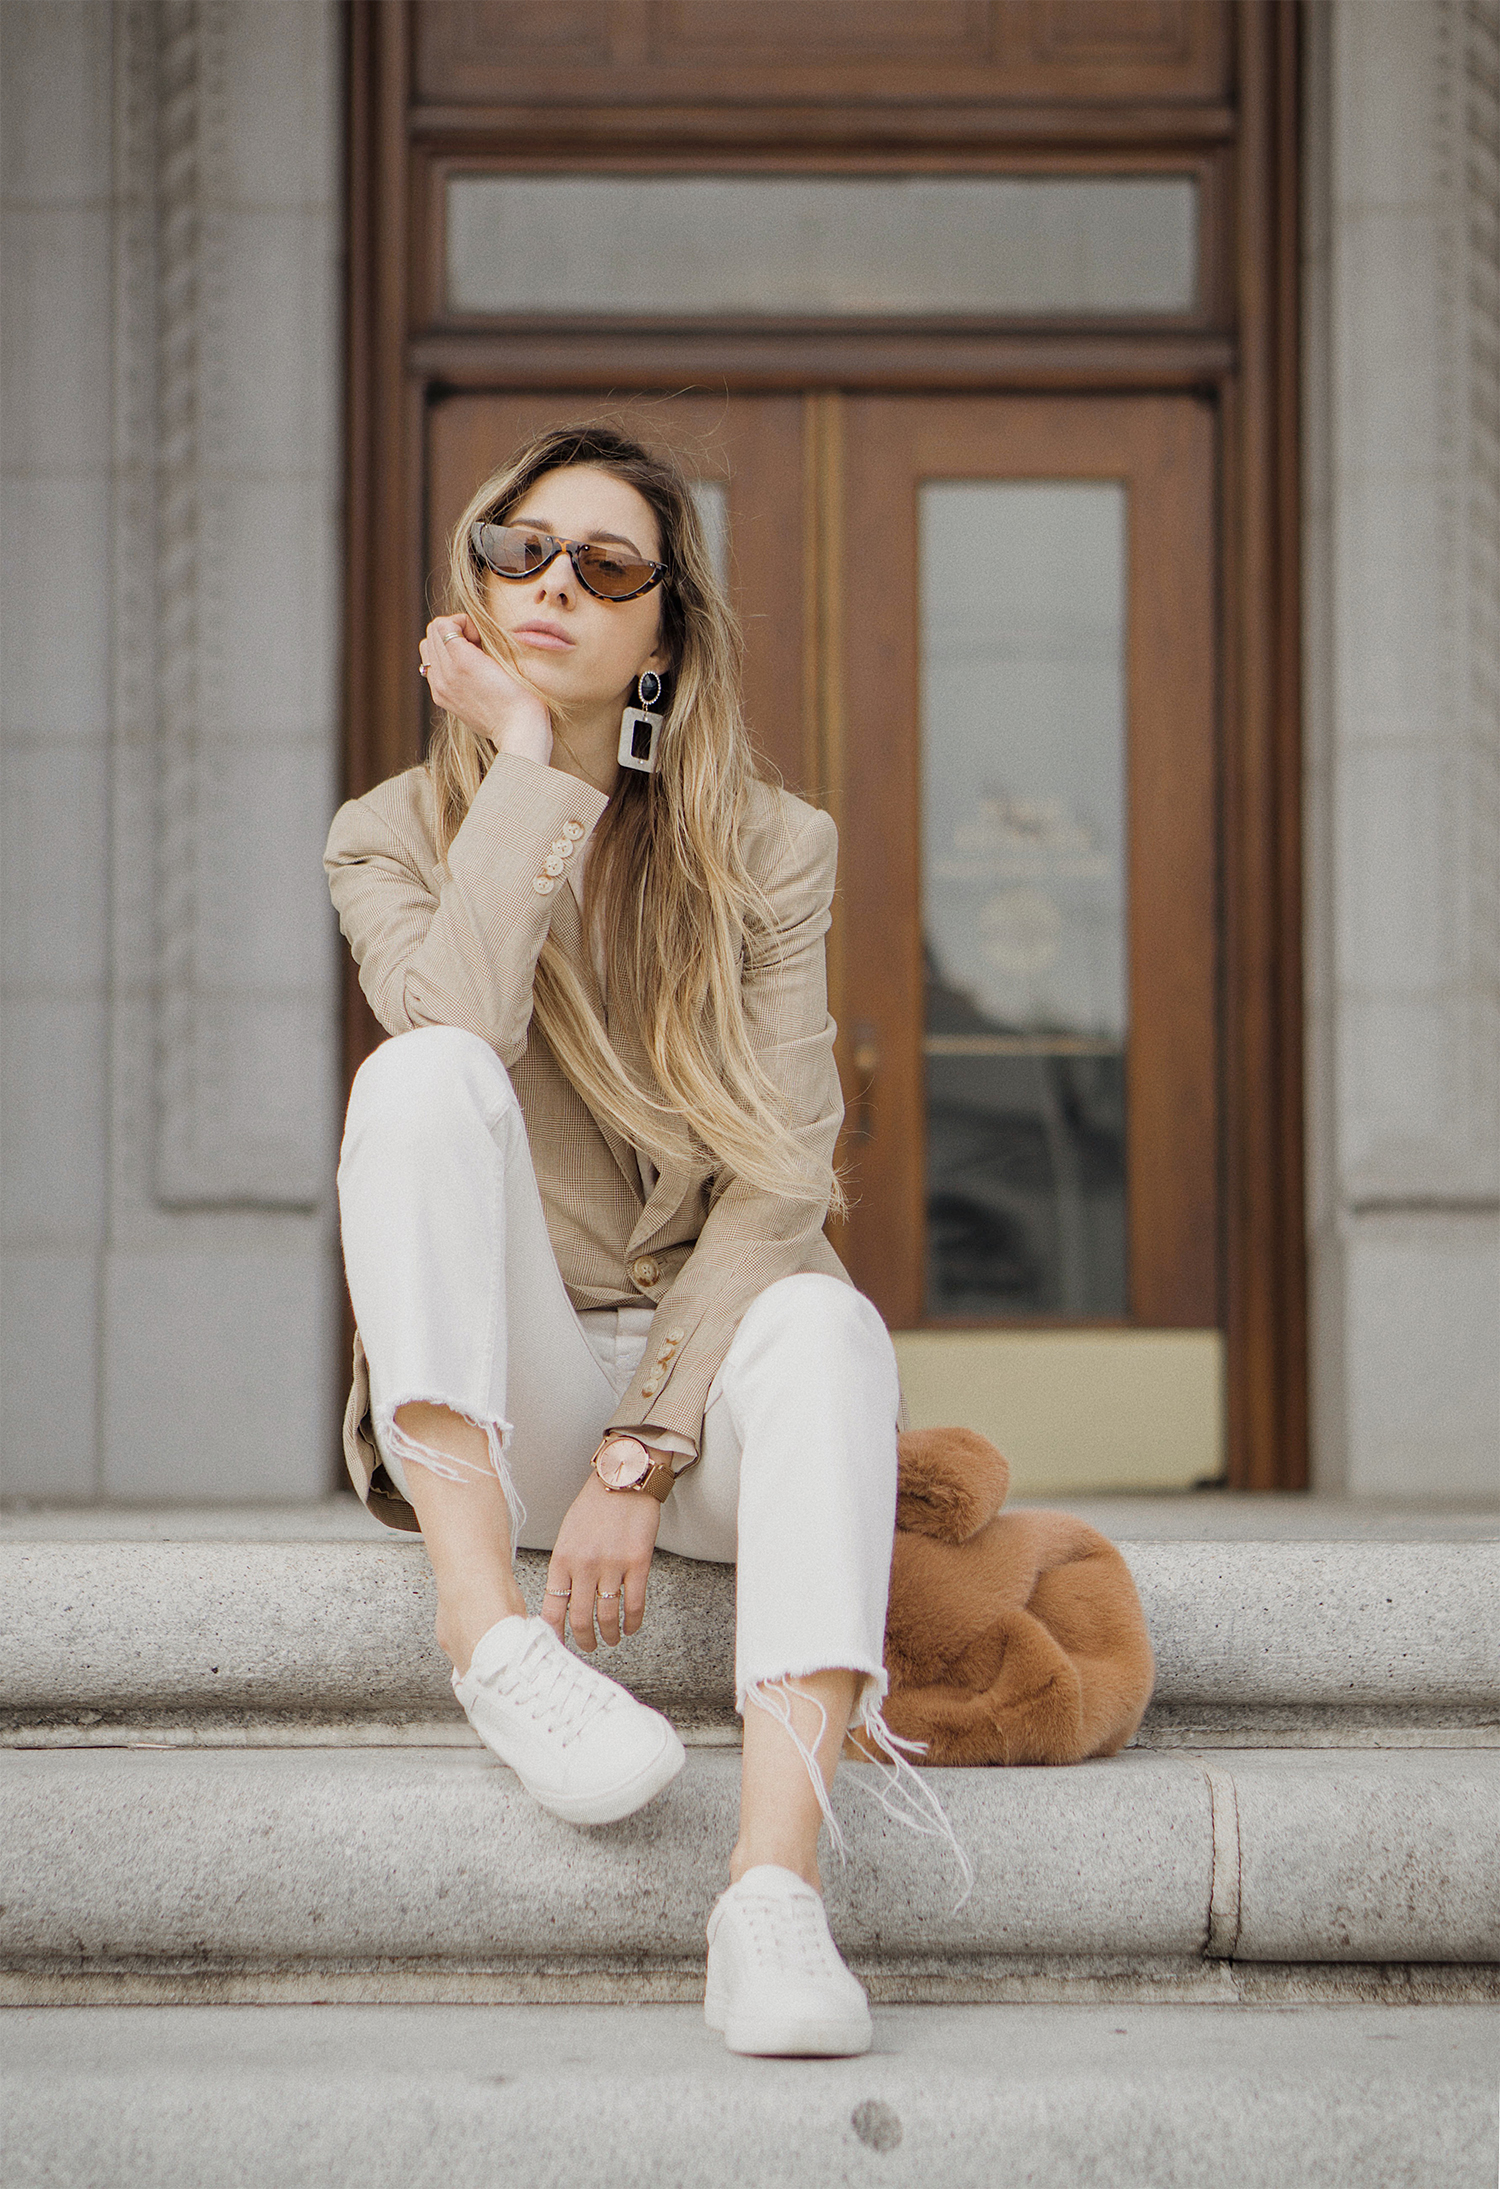 ralph_lauren_neutral_layers_outfit_fur_bag_vince_zara_trench_coat_street_style_lenajuice_thewhiteocean_03